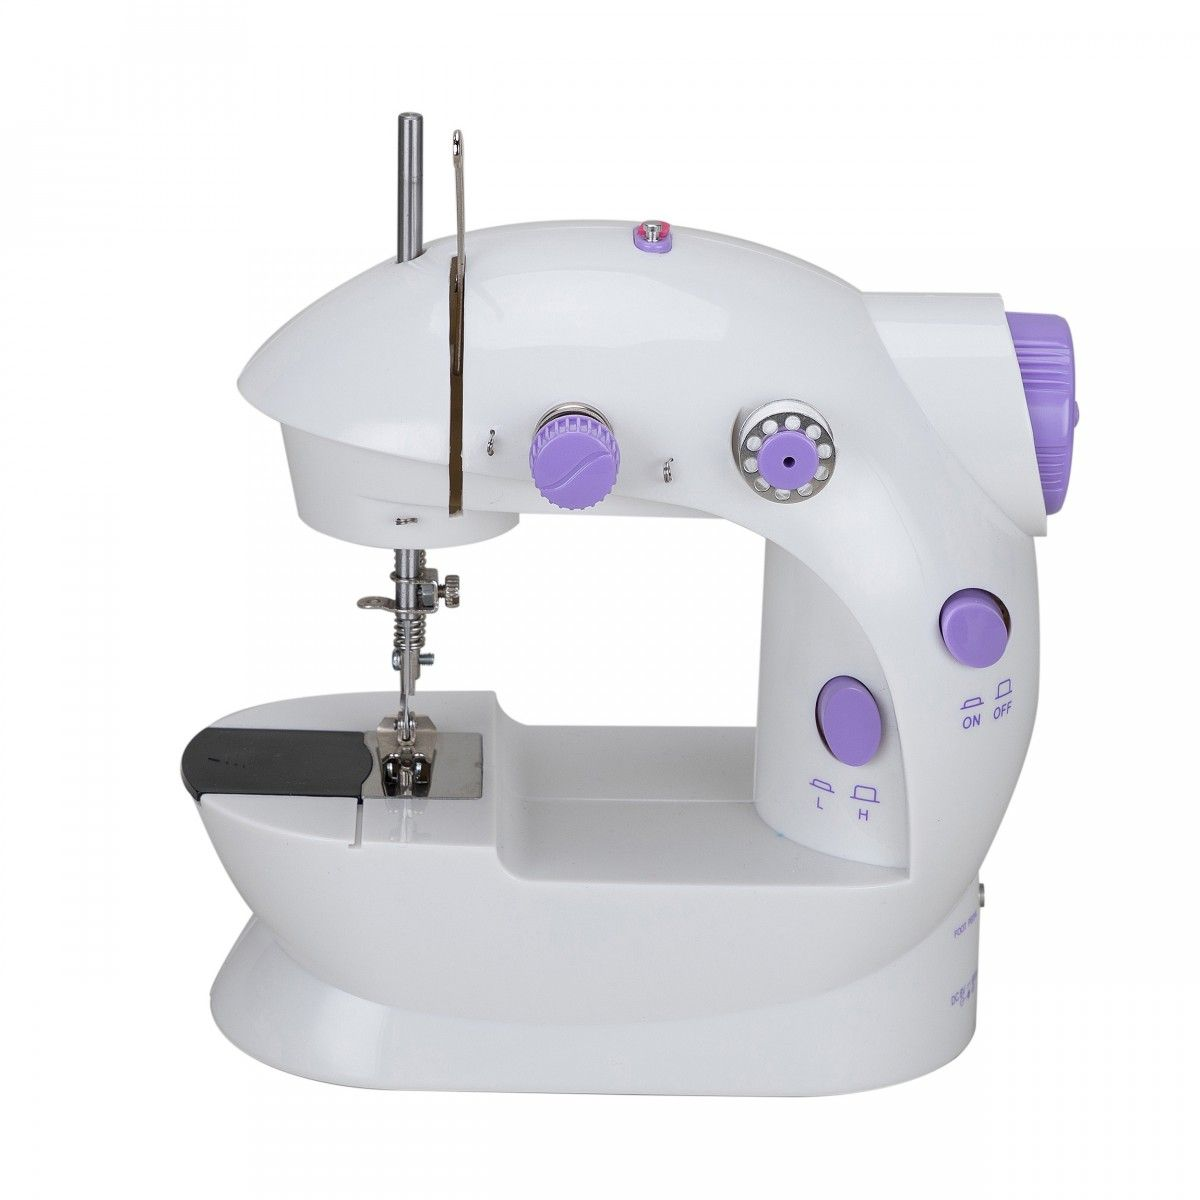 Other Toys - My First Sewing Machine - Purple - Fine ...